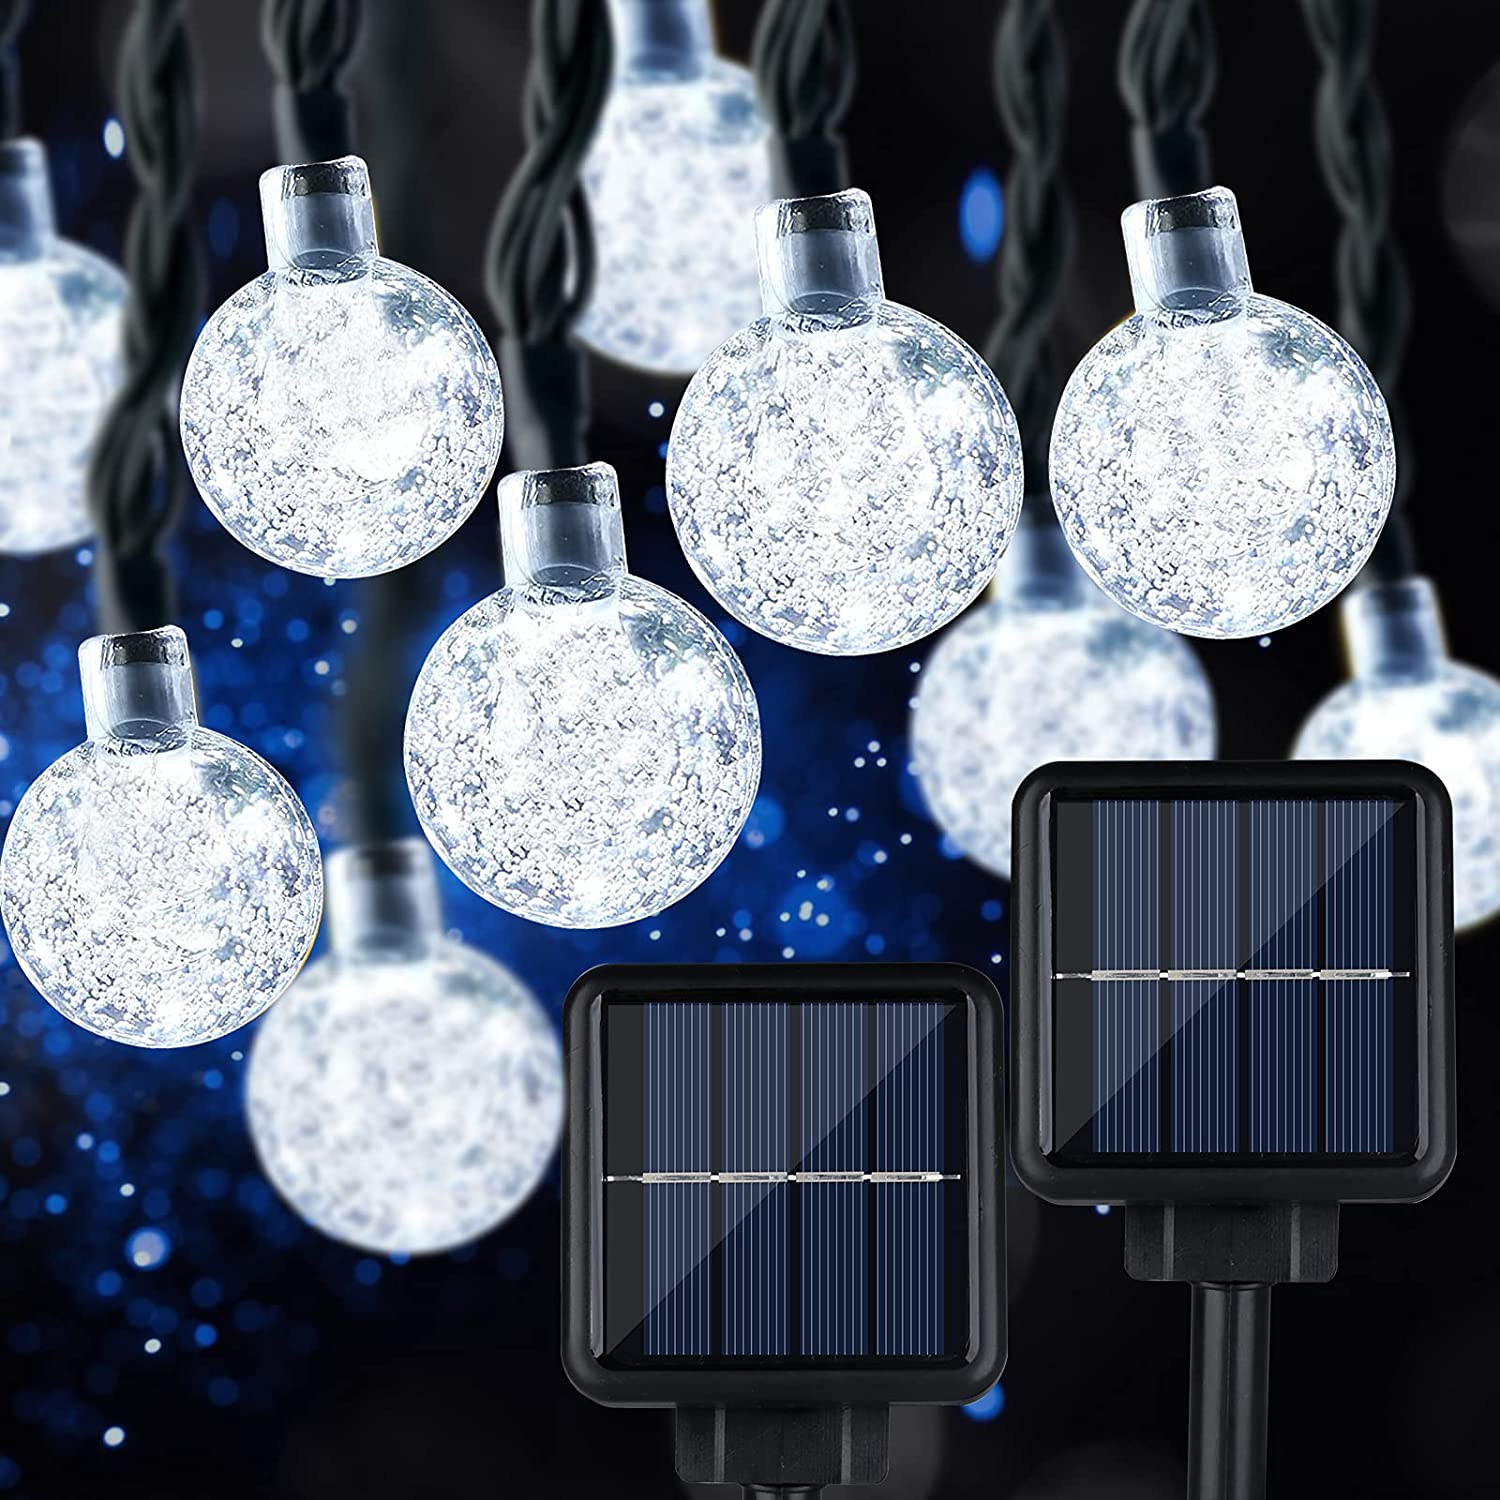 Extra-Long 2-Pack 160 LED 110FT Crystal Globe Solar String Lights Outdoor Waterproof, Led Solar Lights Outdoor Decorative, 8 Modes Solar Powered Patio Lights for Garden Christmas Party Tree, Daylight